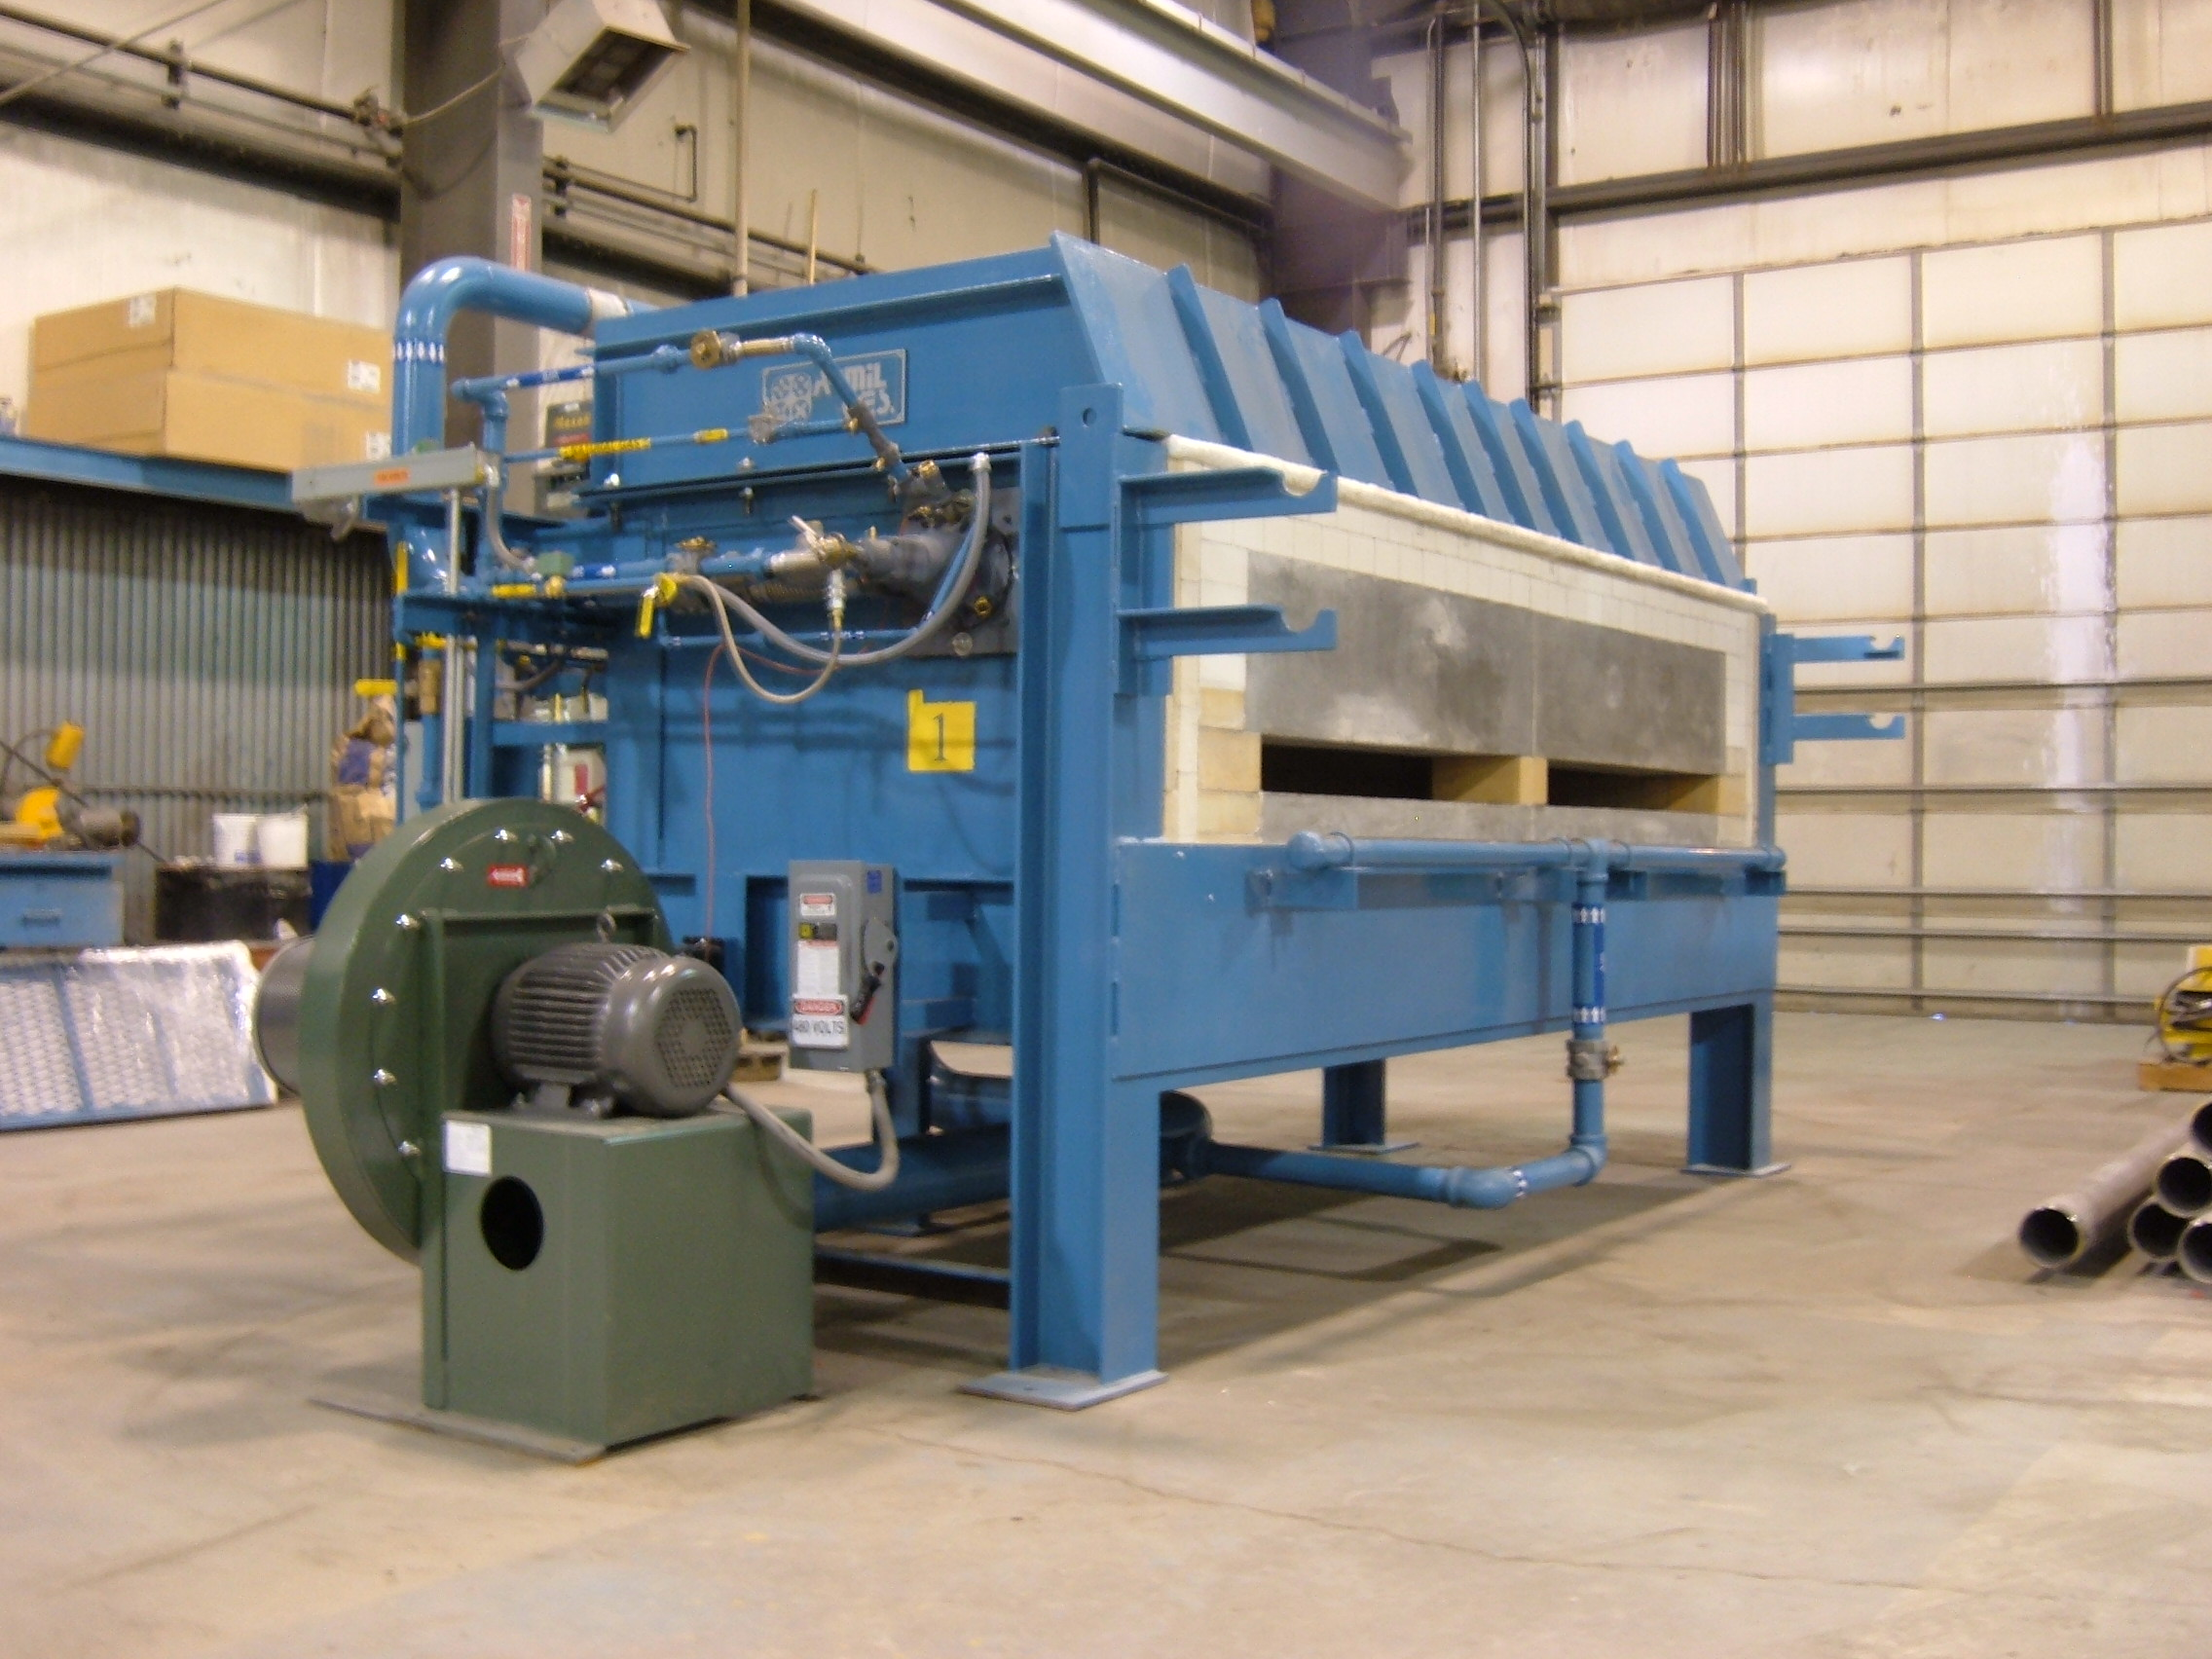 Industrial Forging Custom Forging And Heat Treating Furnaces Industrial Furnaces